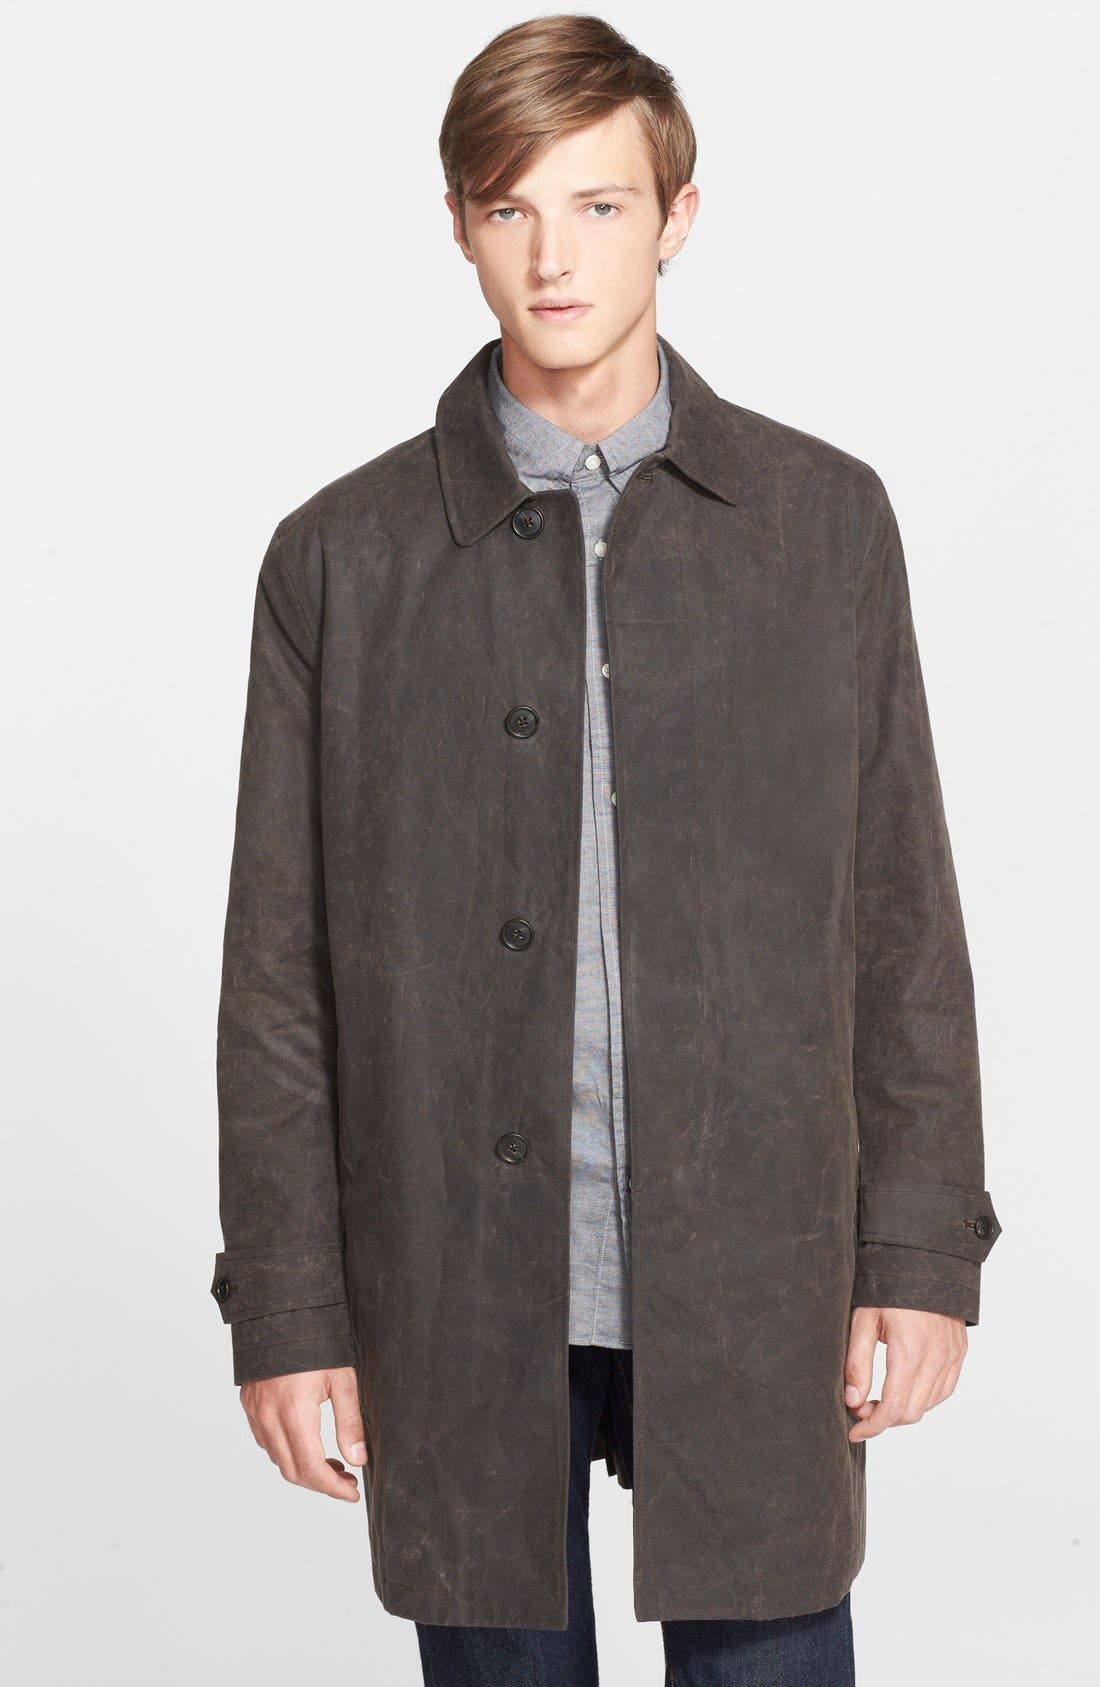 Main Image - Jack Spade 'Waxwear' Water Resistant Waxed Canvas Trench Coat